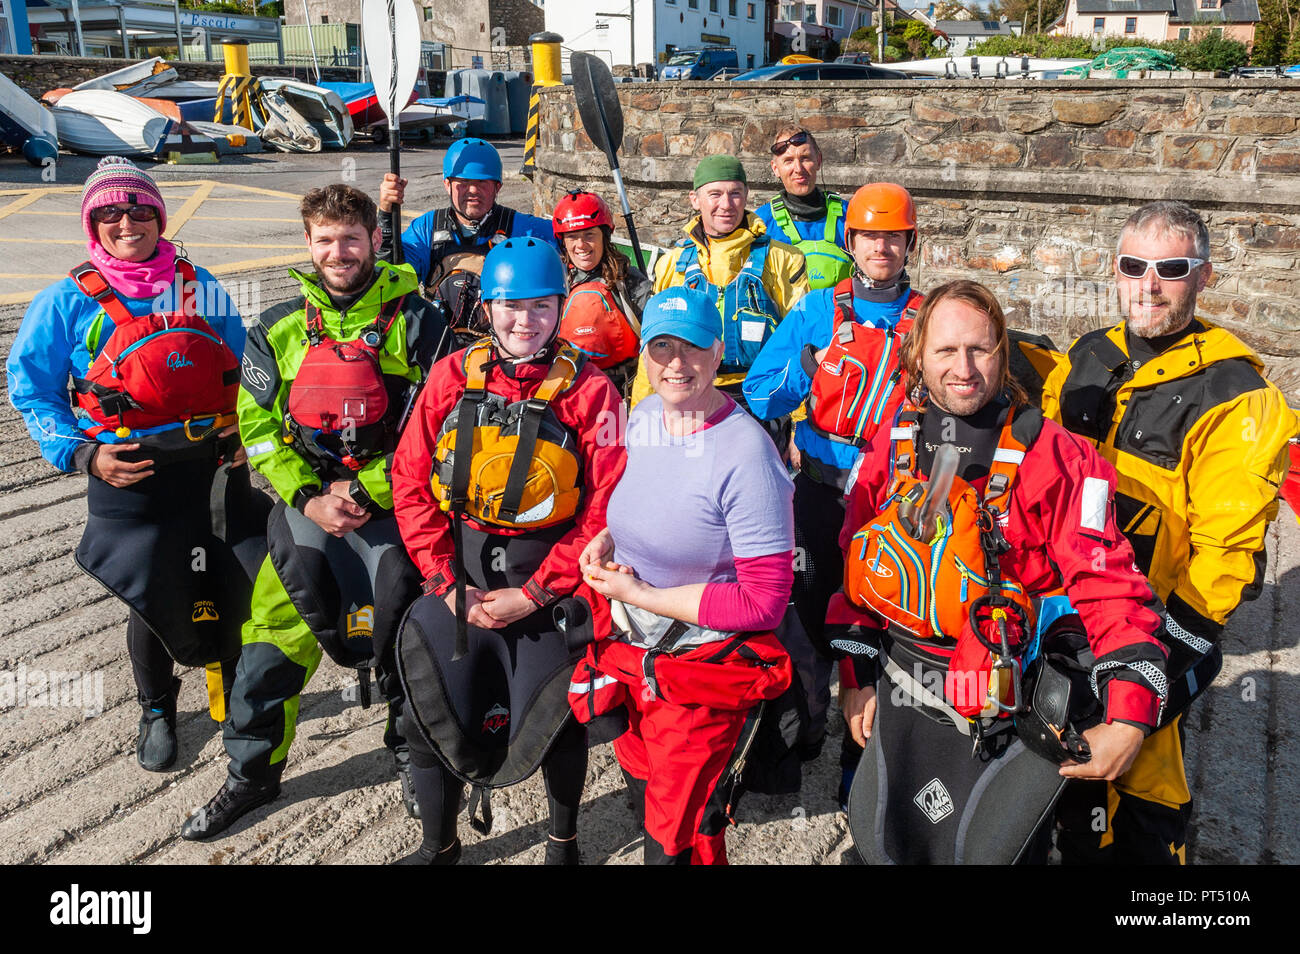 Schull, West Cork, Ireland. 6th Oct, 2018.  On a beautiful day in West Cork, Association members pose for a group photo. Today's activities culminate this evening in a dinner dance at the Schull Harbour Hotel. Credit: Andy Gibson/Alamy Live News. Stock Photo